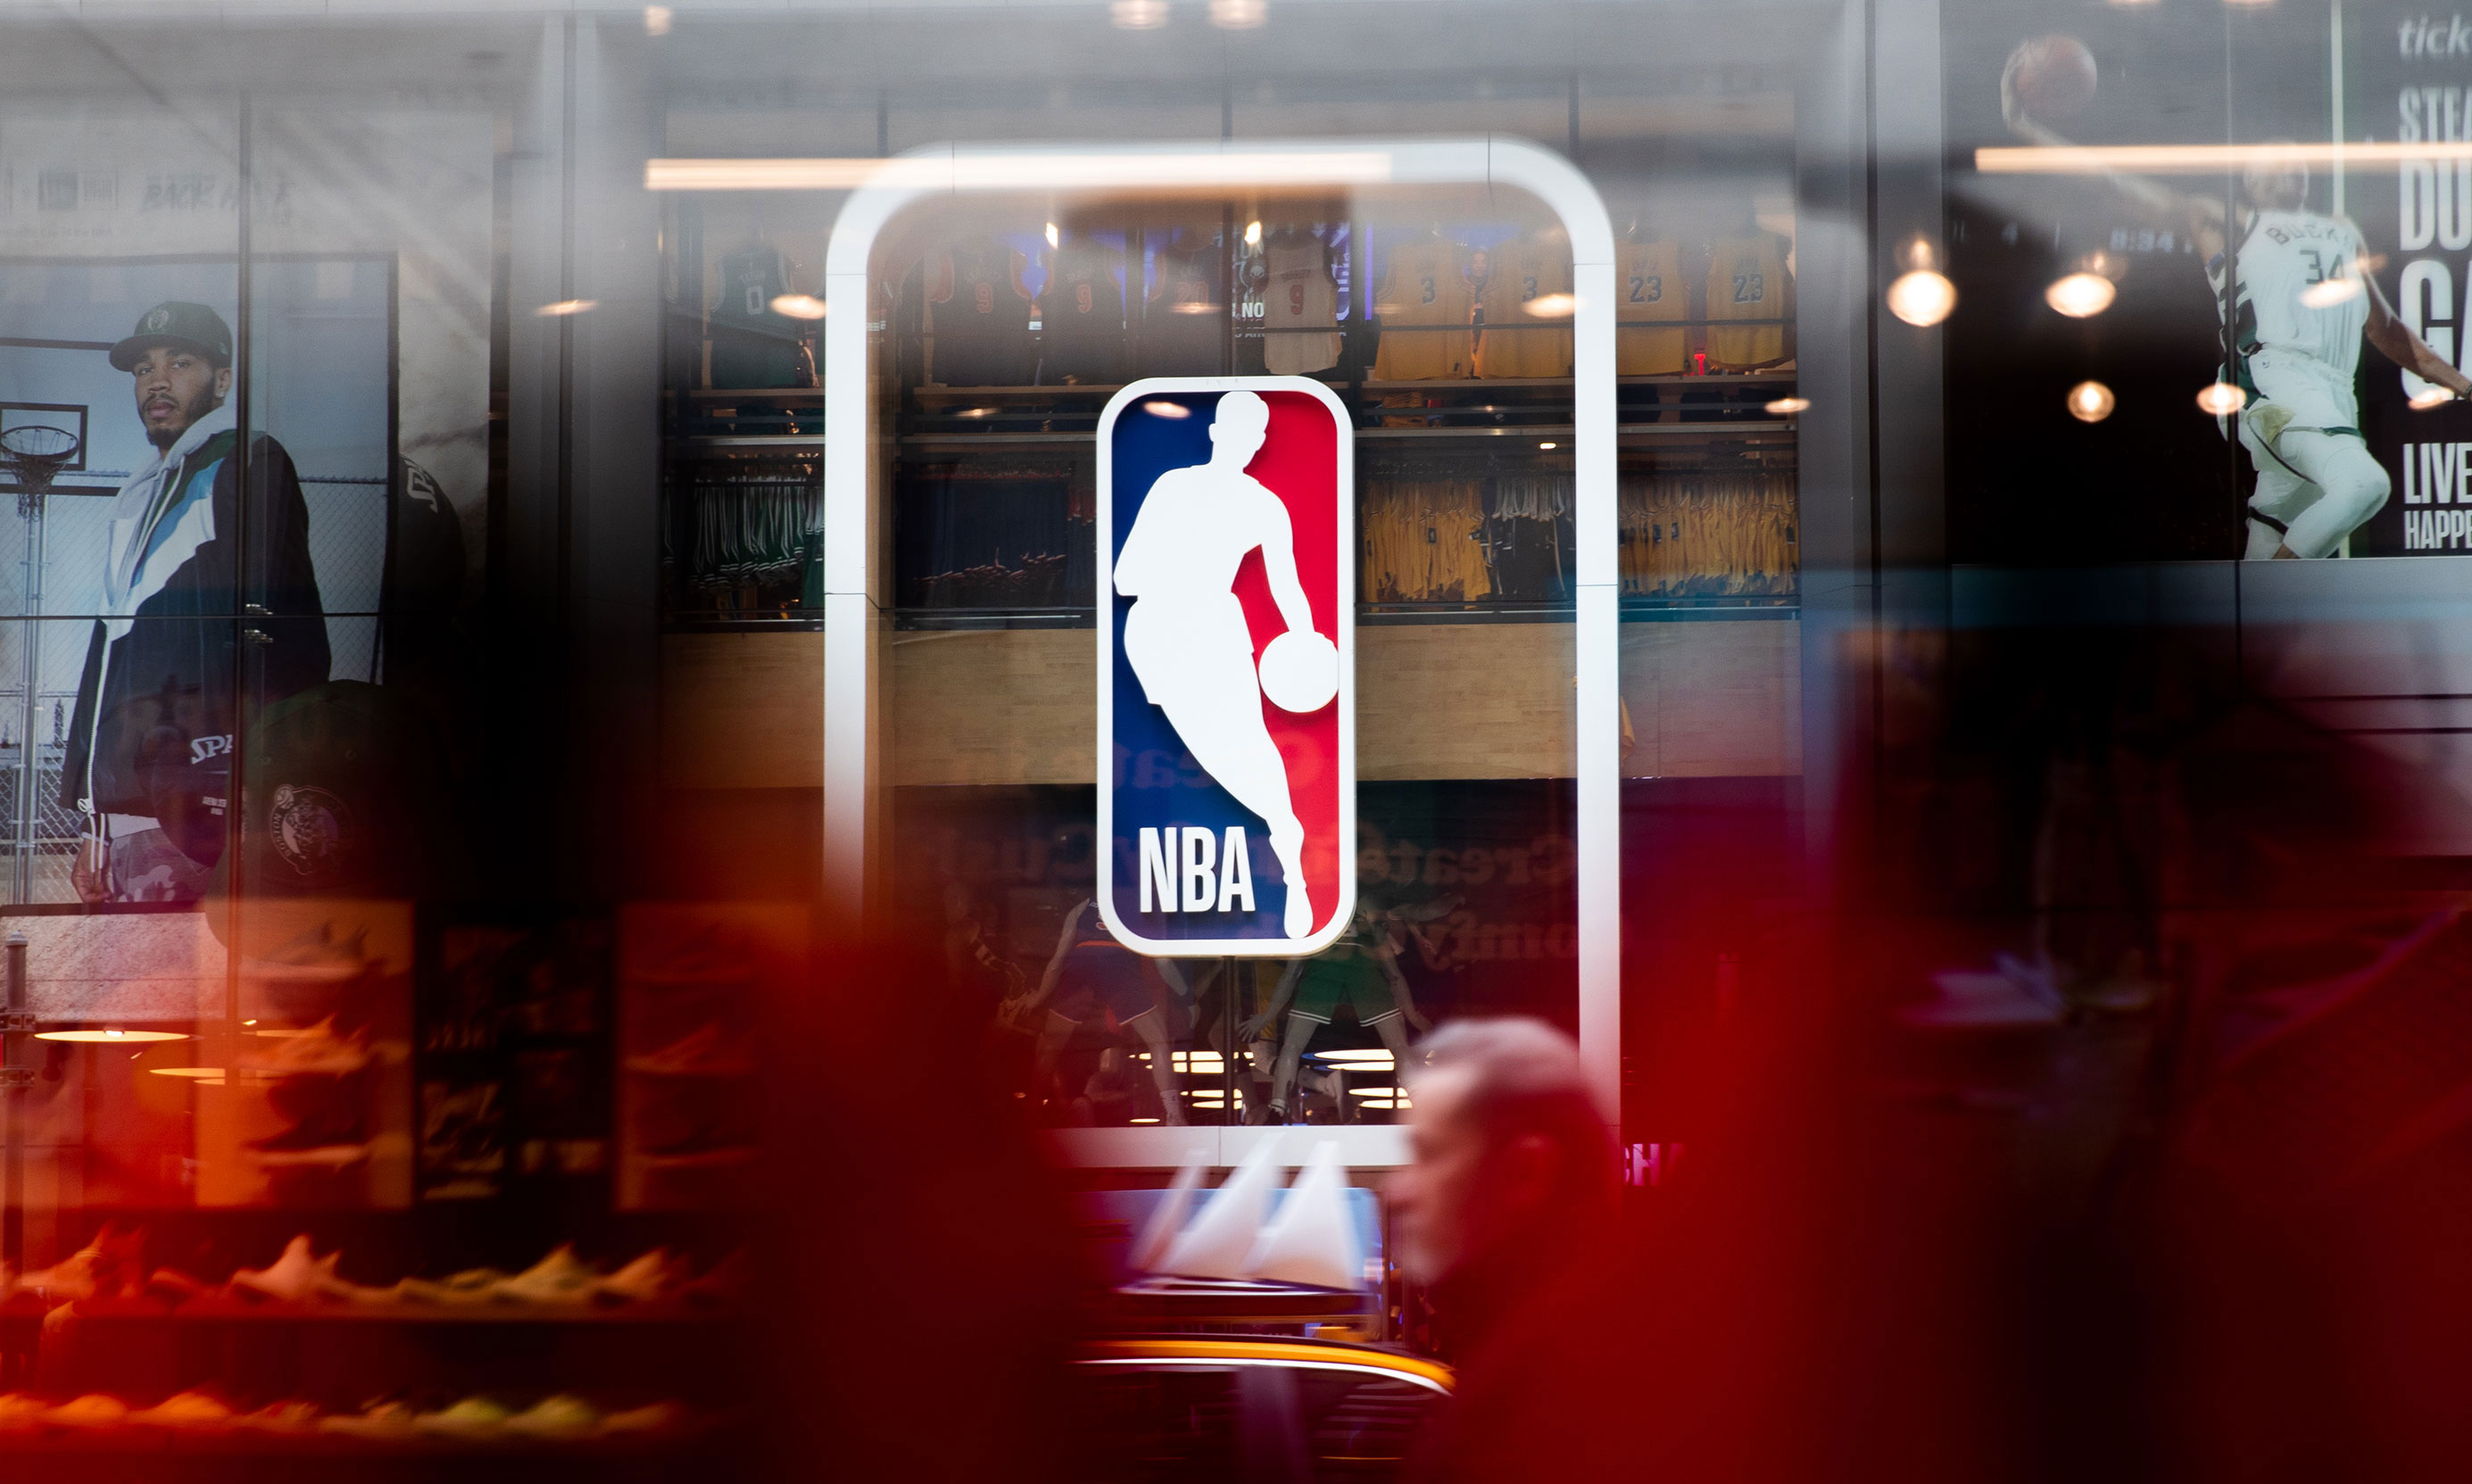 Pedestrians walk past an NBA store on March 12 in New York City.